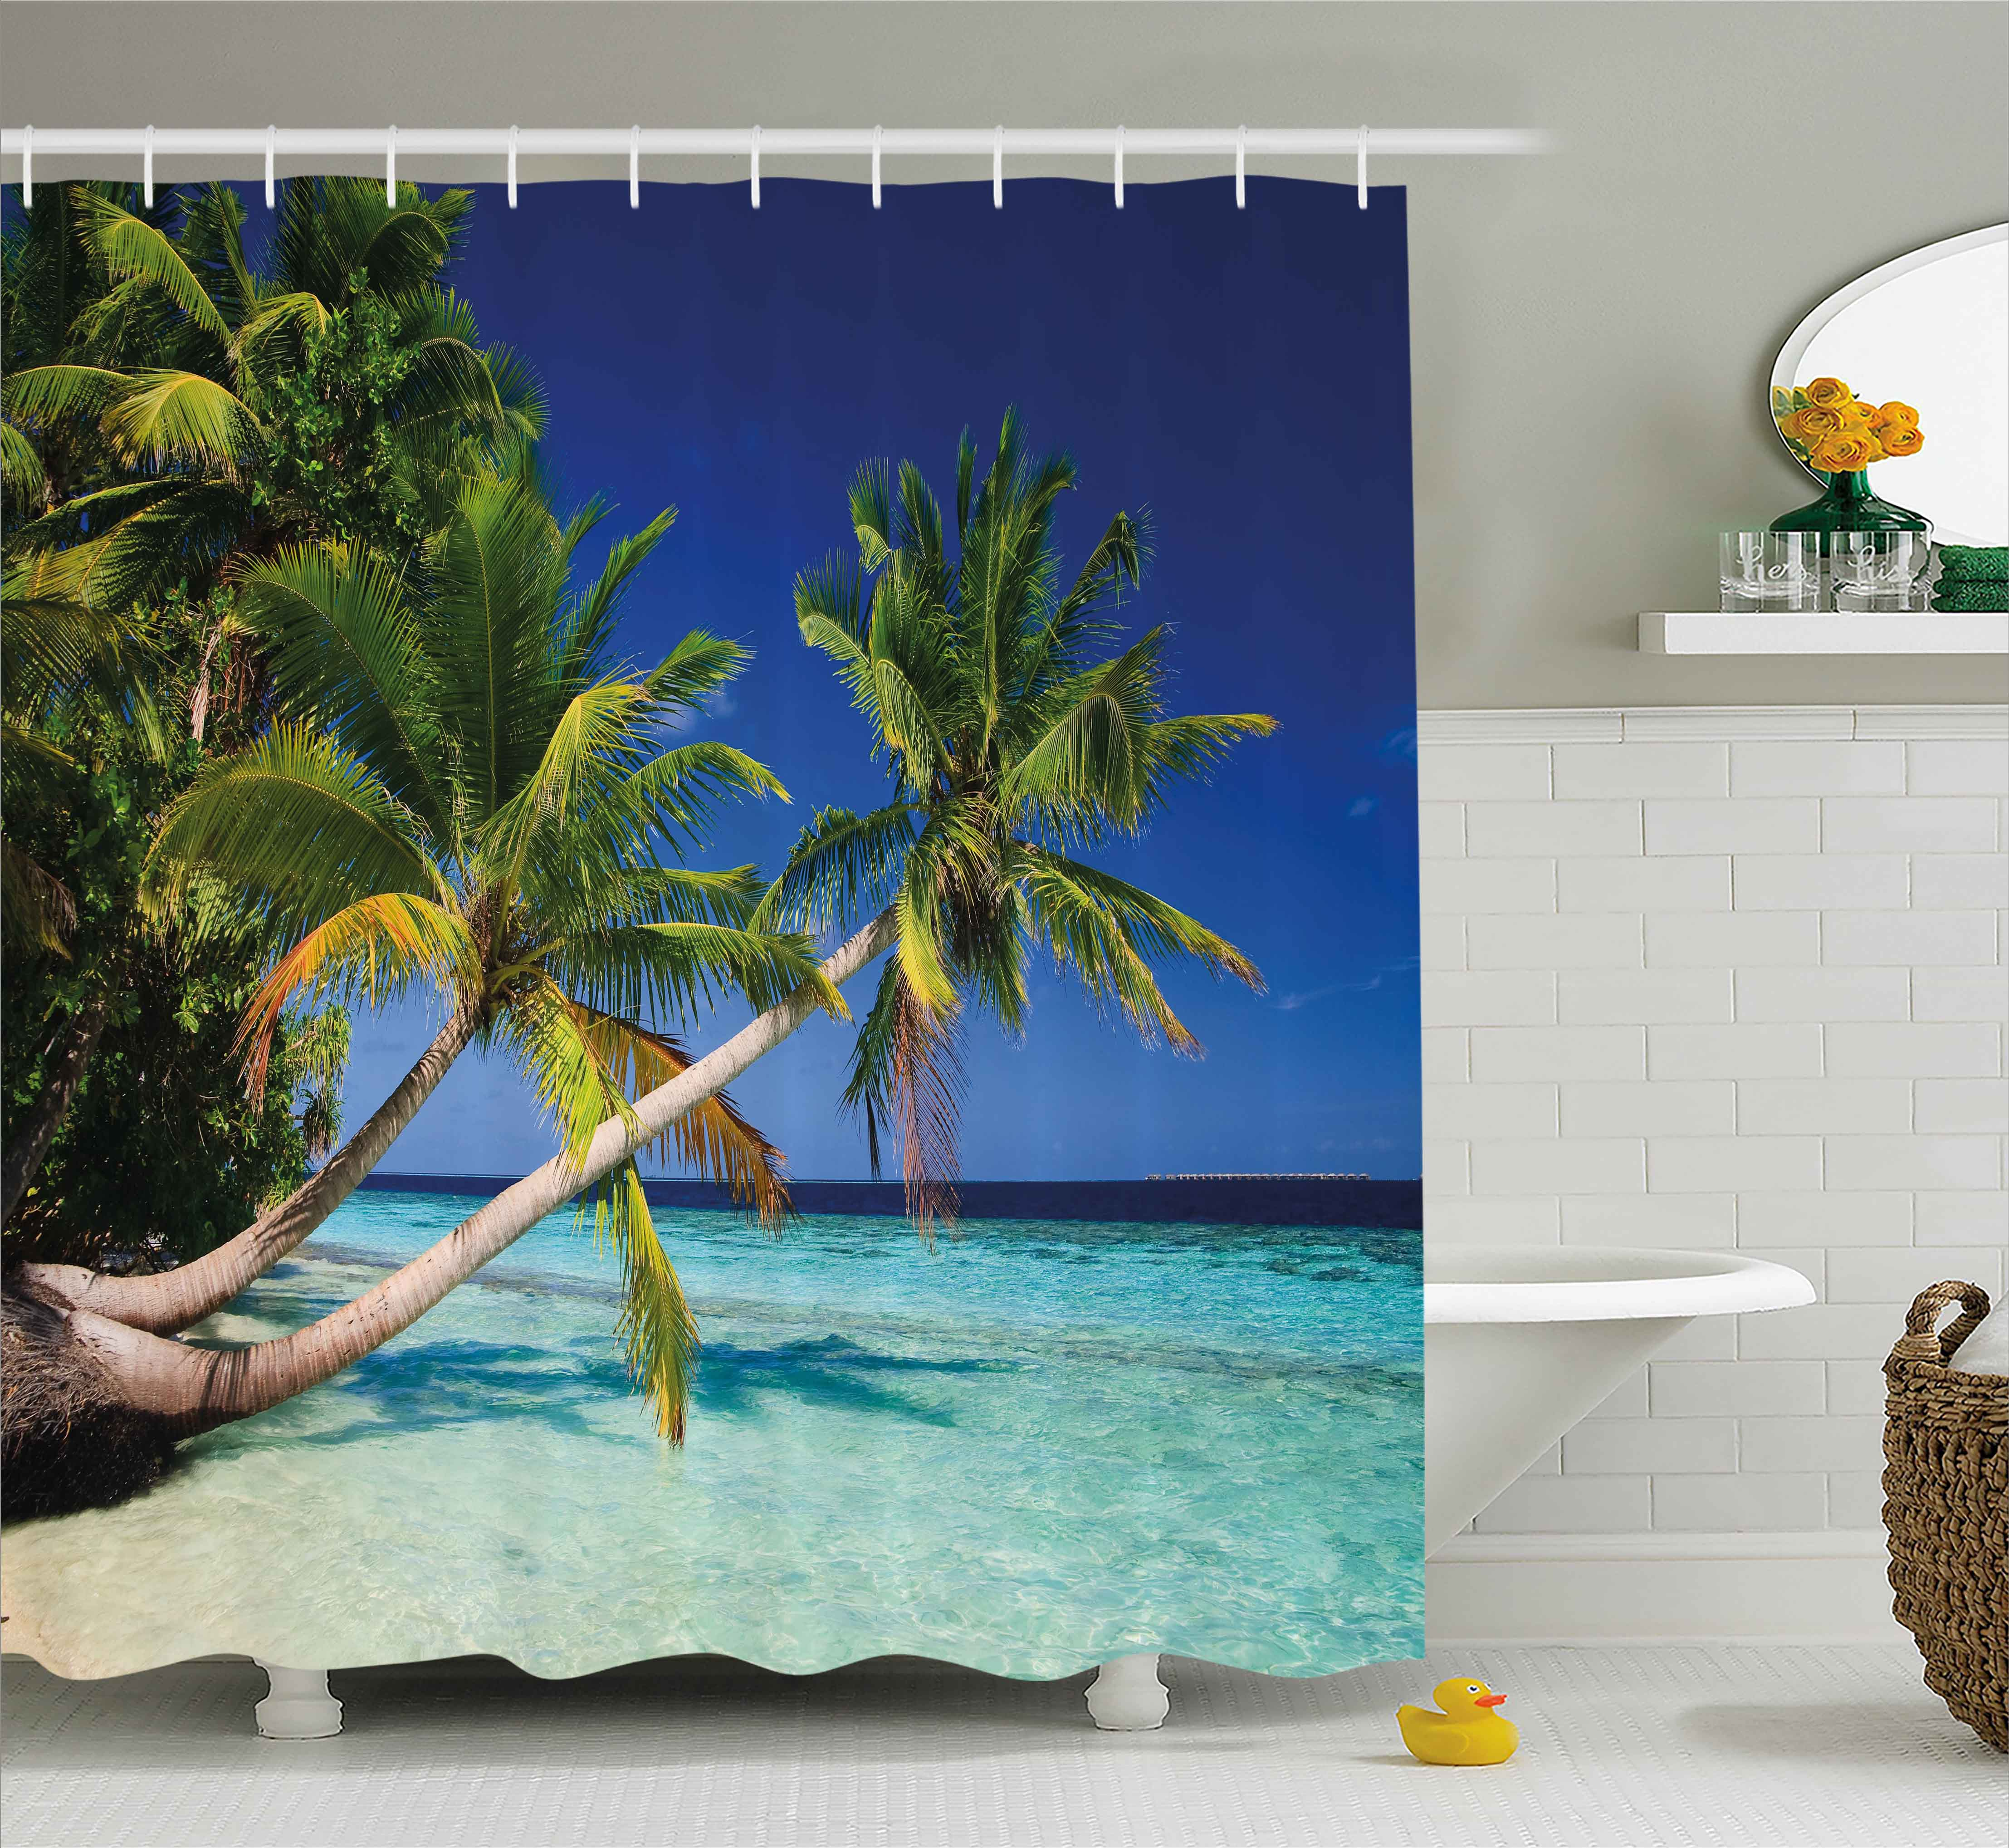 Tropical Shower Curtain, Exotic Maldives Beach with Palms Paradise Coast Vacation Scenery, Fabric Bathroom Set with Hooks, 69W X 70L Inches, Blue Turquoise Fern Green, by Ambesonne